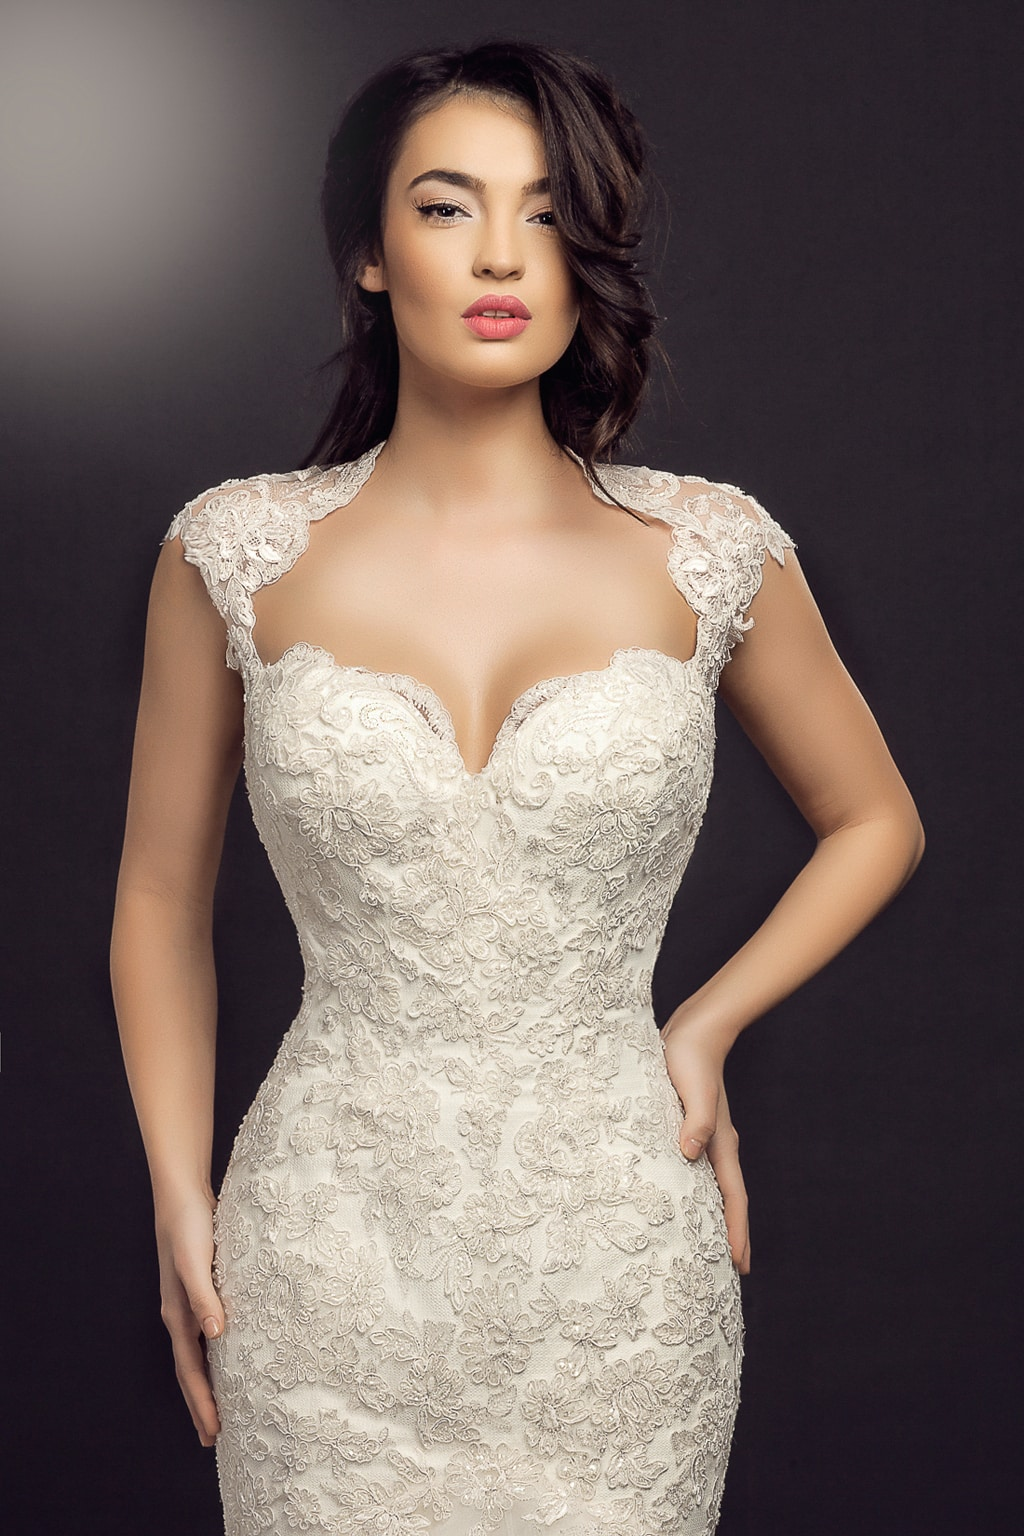 Patrizia Model - Colectia Dreams - Adora Sposa (2)